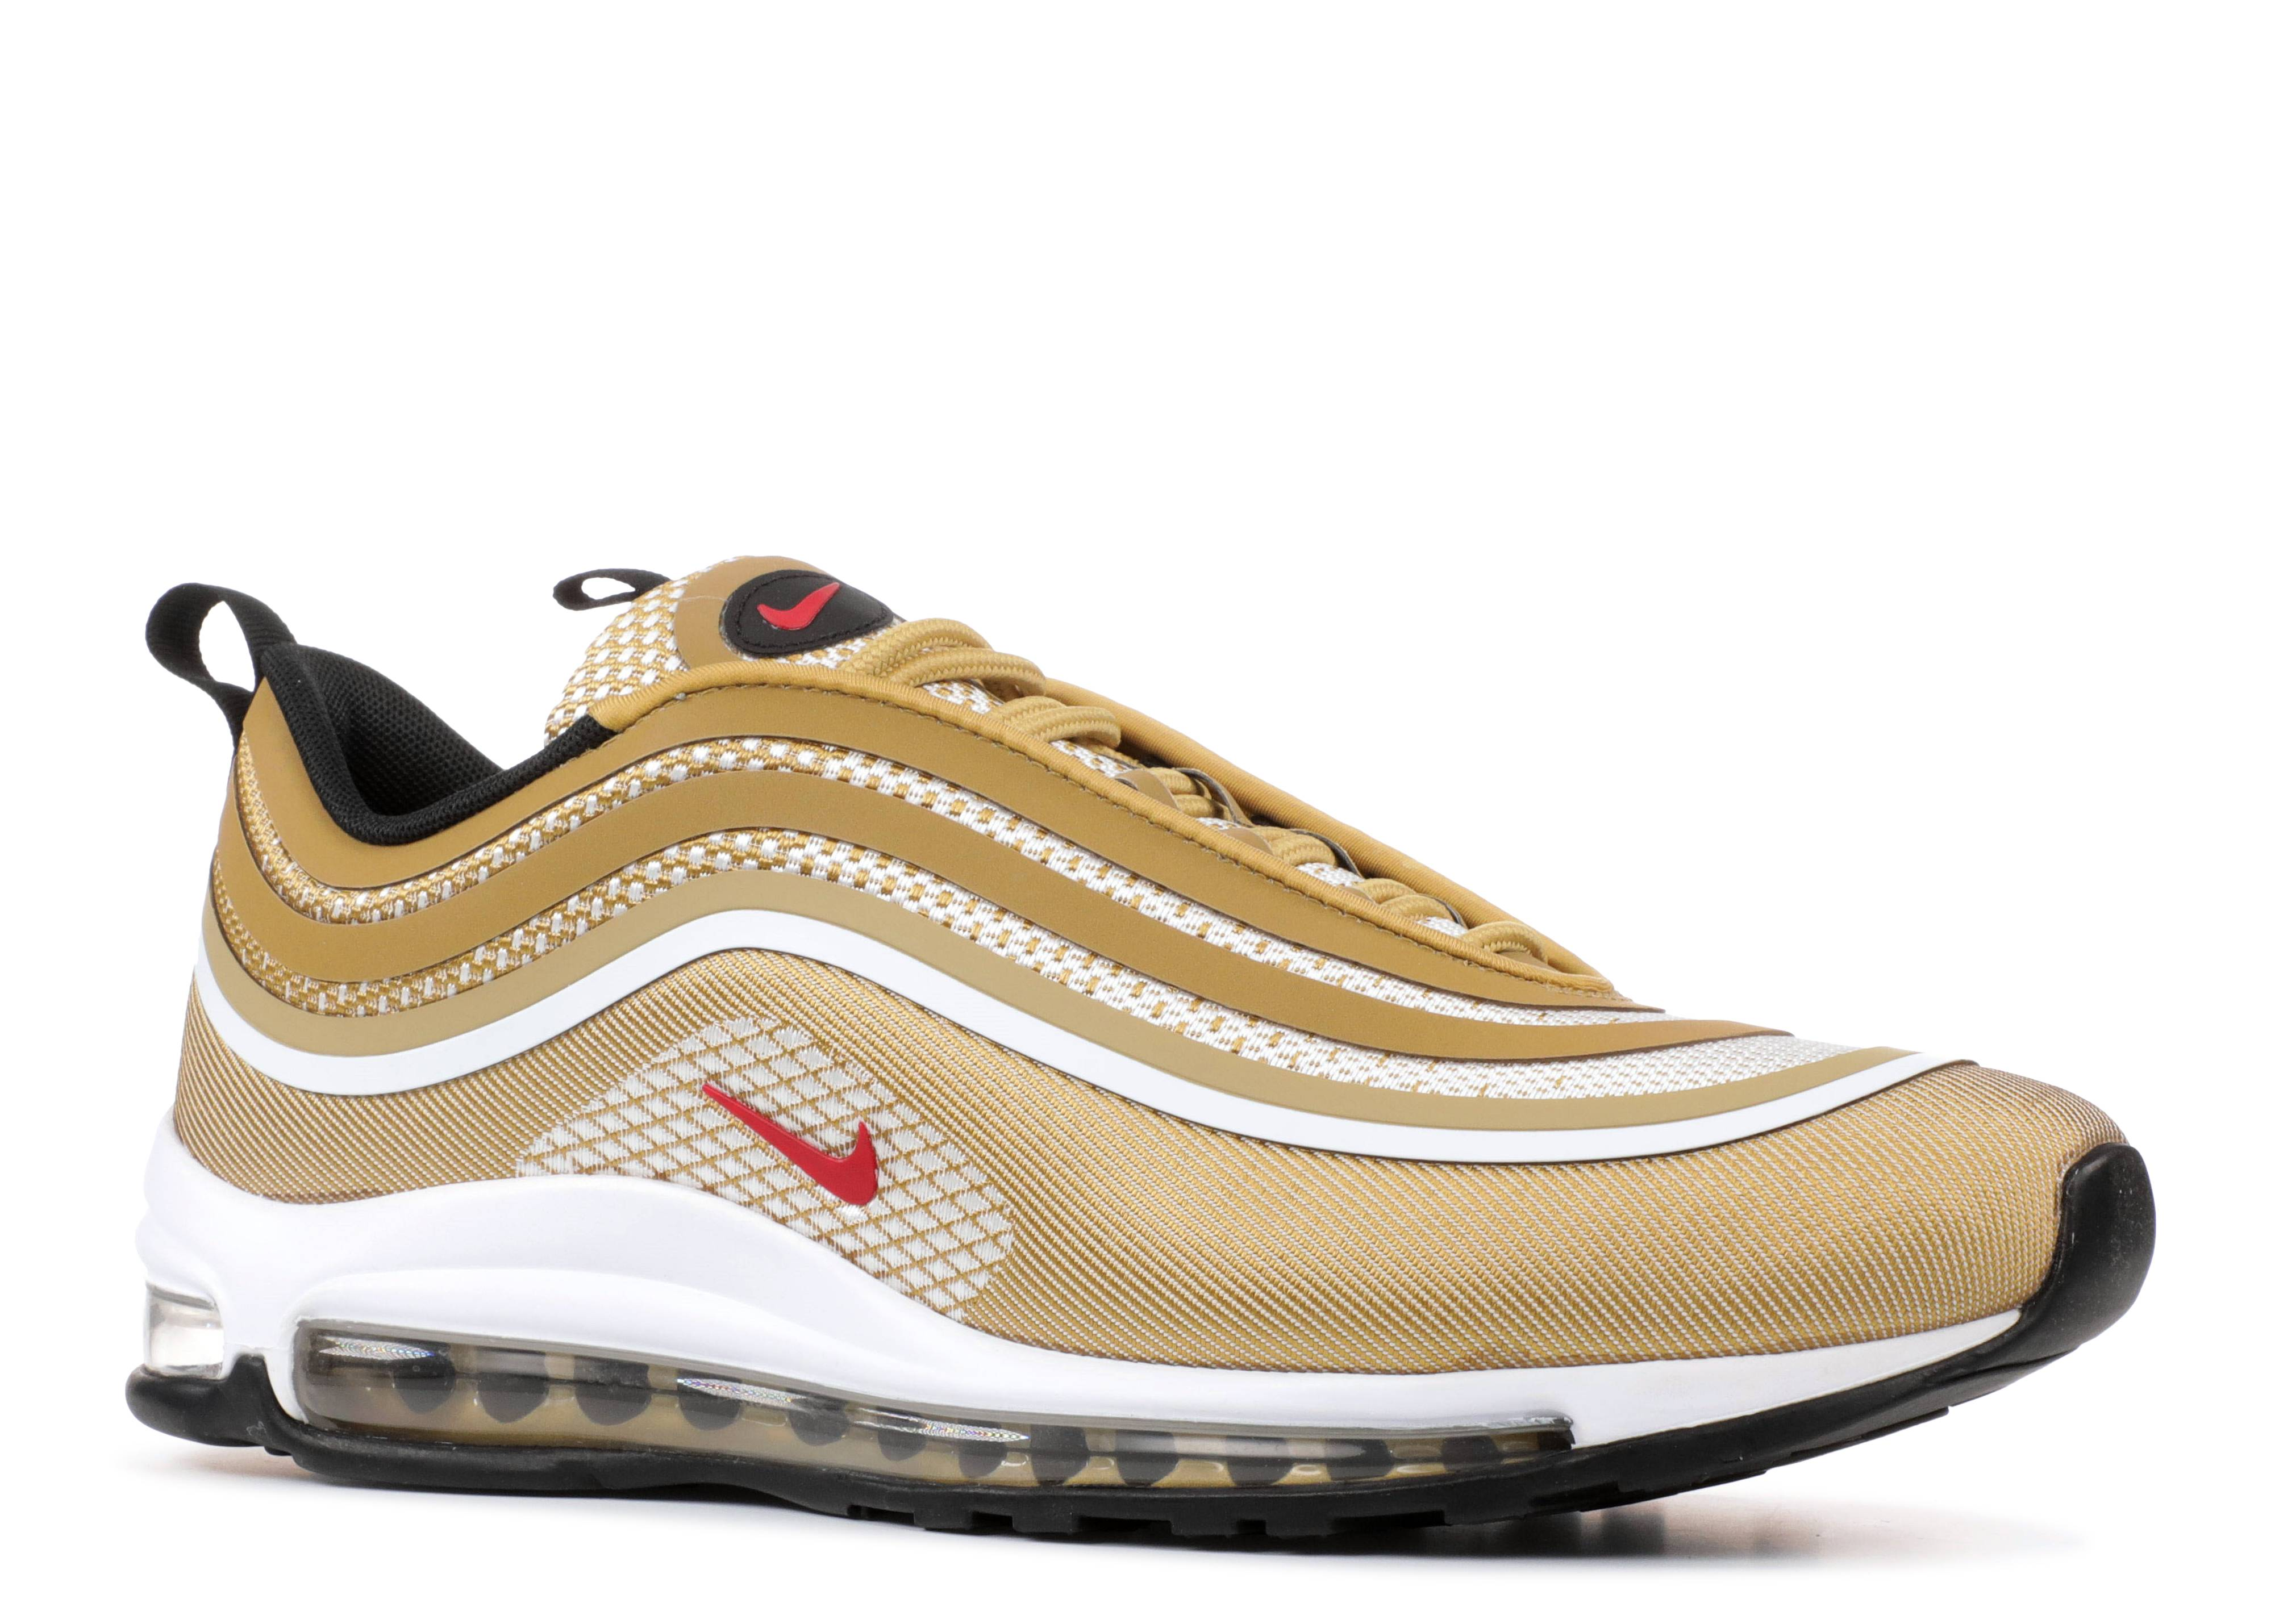 b40bba411de Air Max 97 Ul 17 - Nike - 918356 700 - metallic gold varsity-red ...